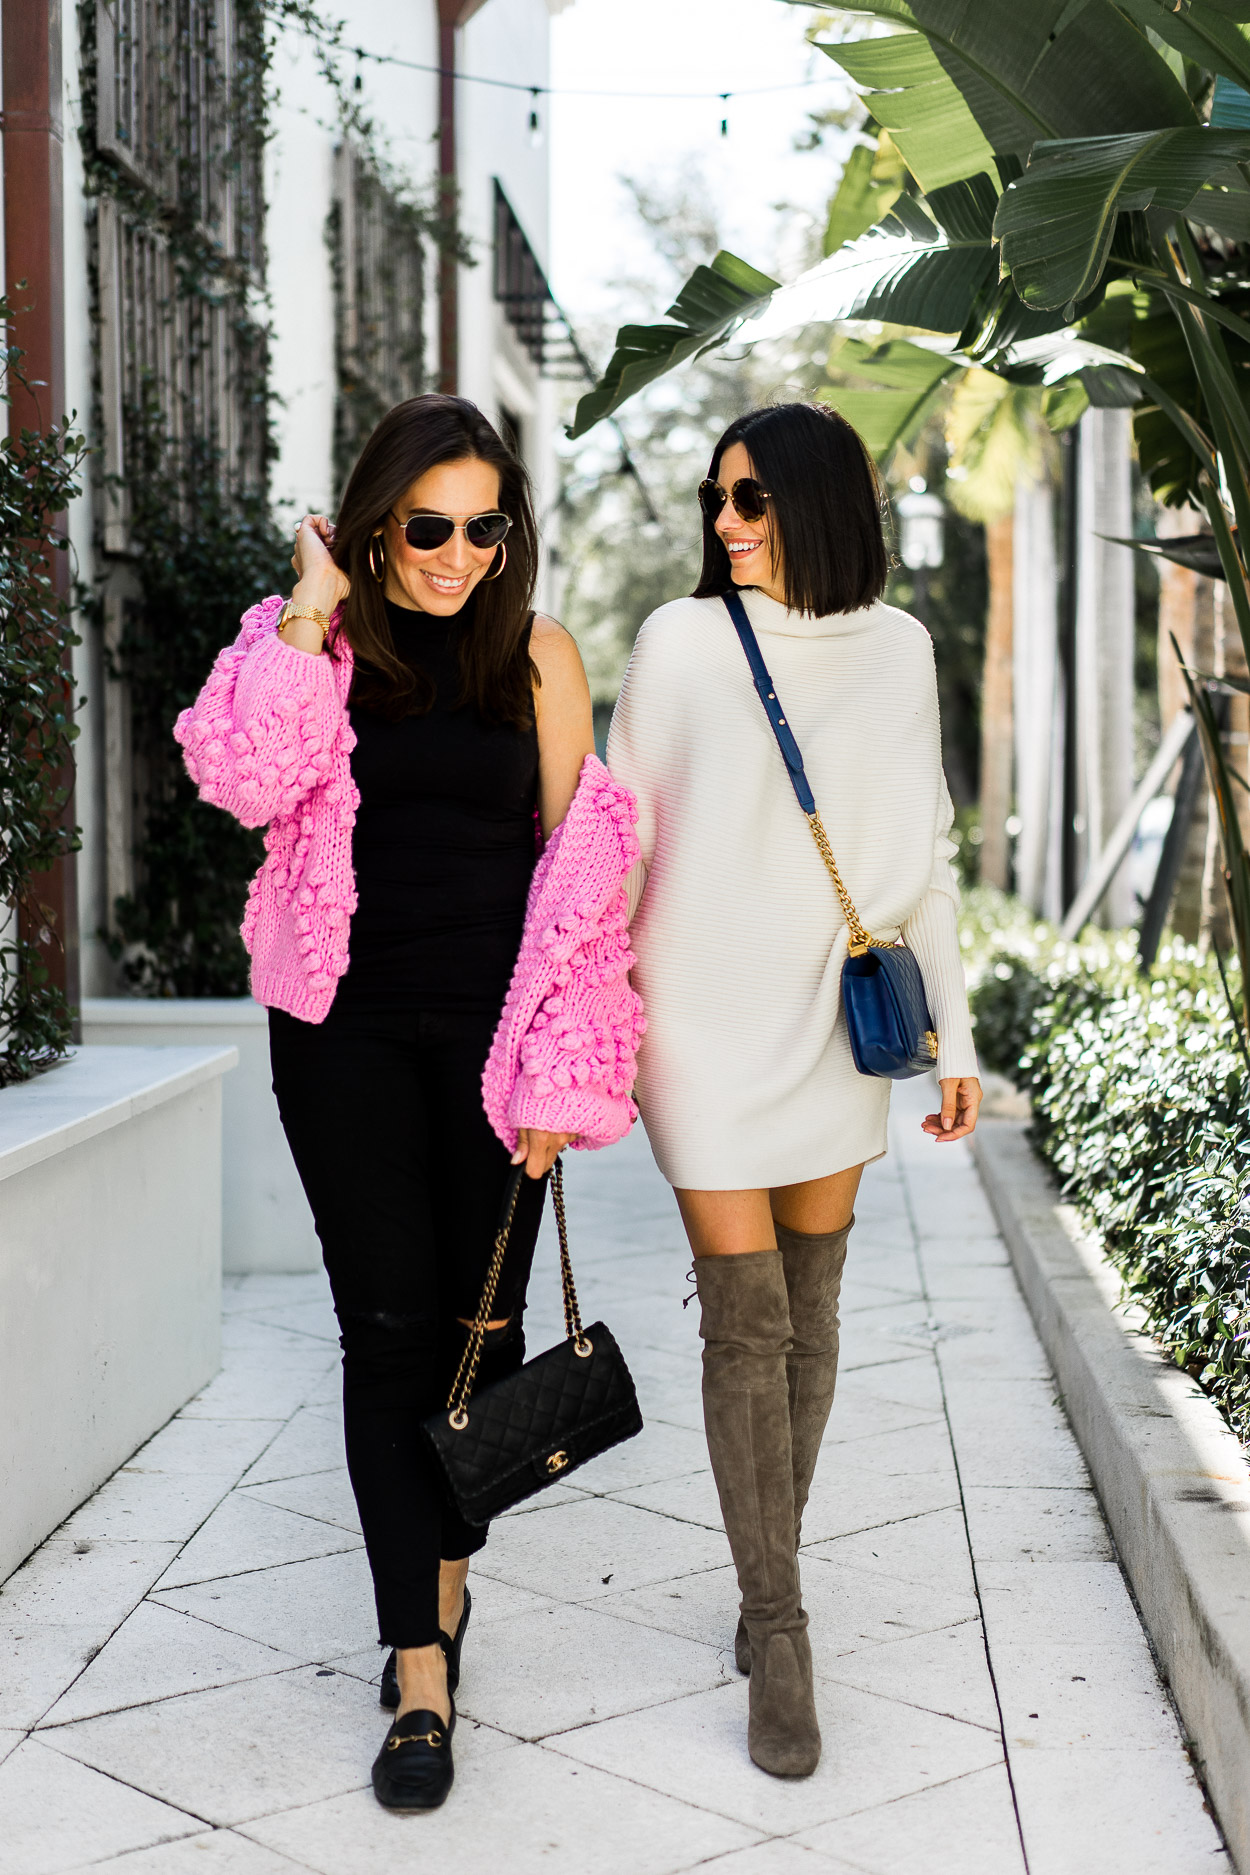 Amanda of A Glam Lifestyle blog wears pink pom pom sweater while out with Caitlin of Sauci Style on Las Olas for NYFW outfit planning